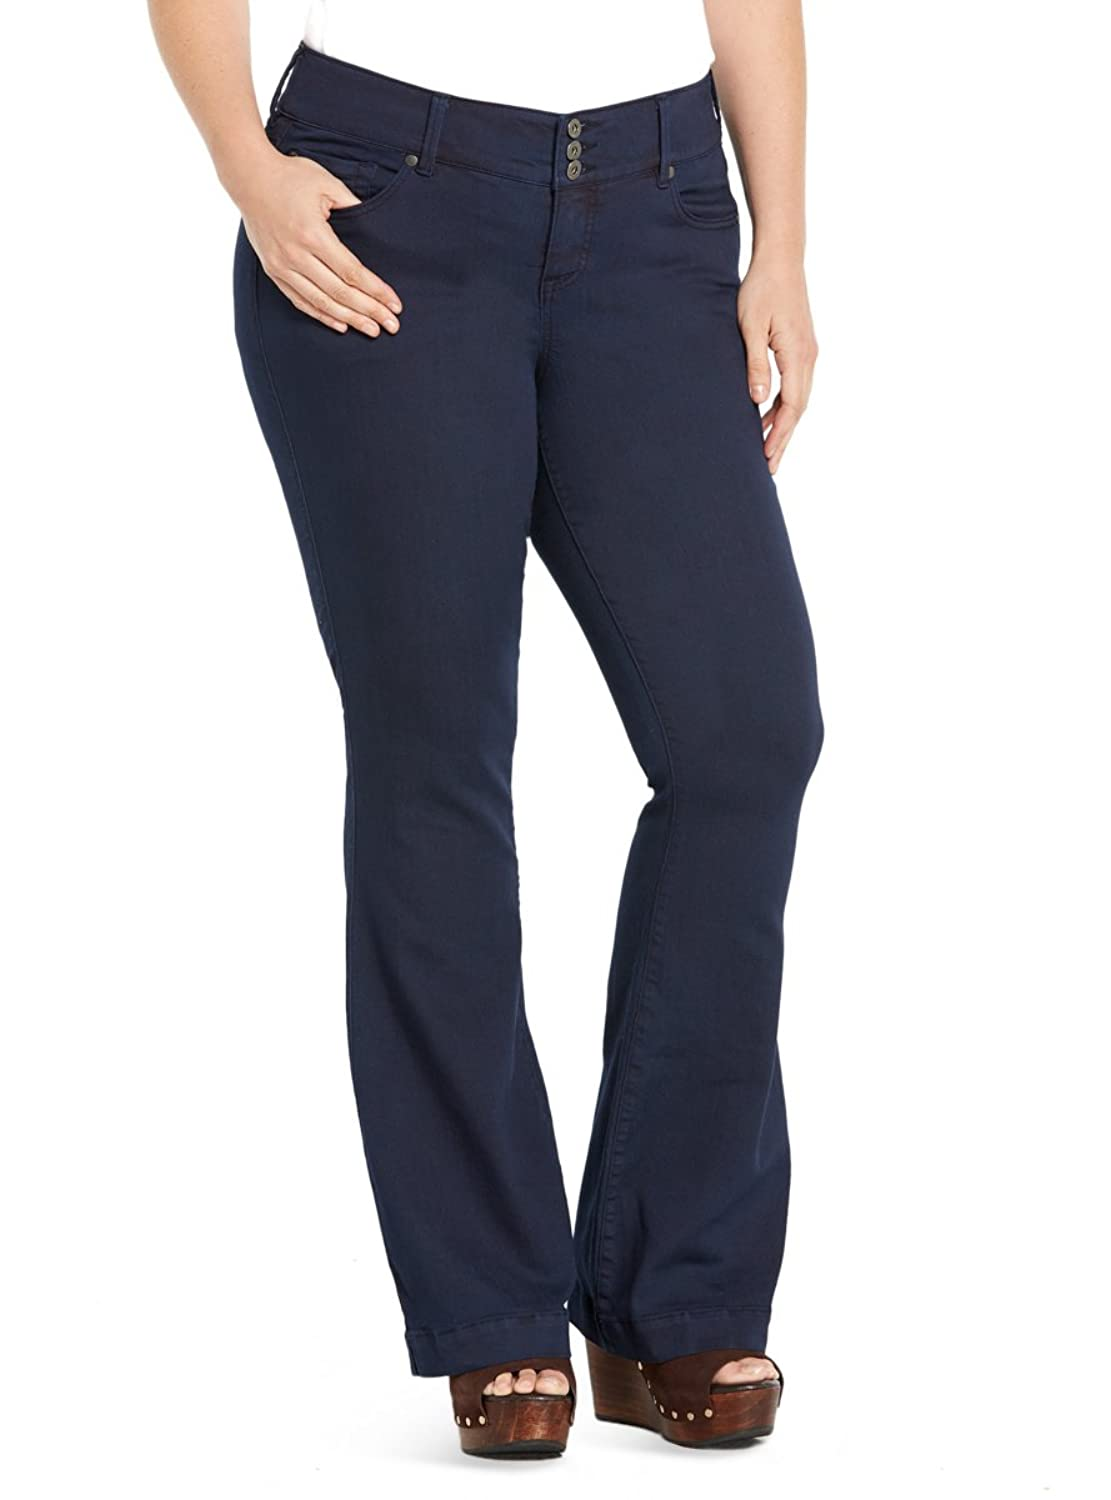 ee7cf742791db Torrid Three-Button Flared Jeans - Navy Wash durable service ...